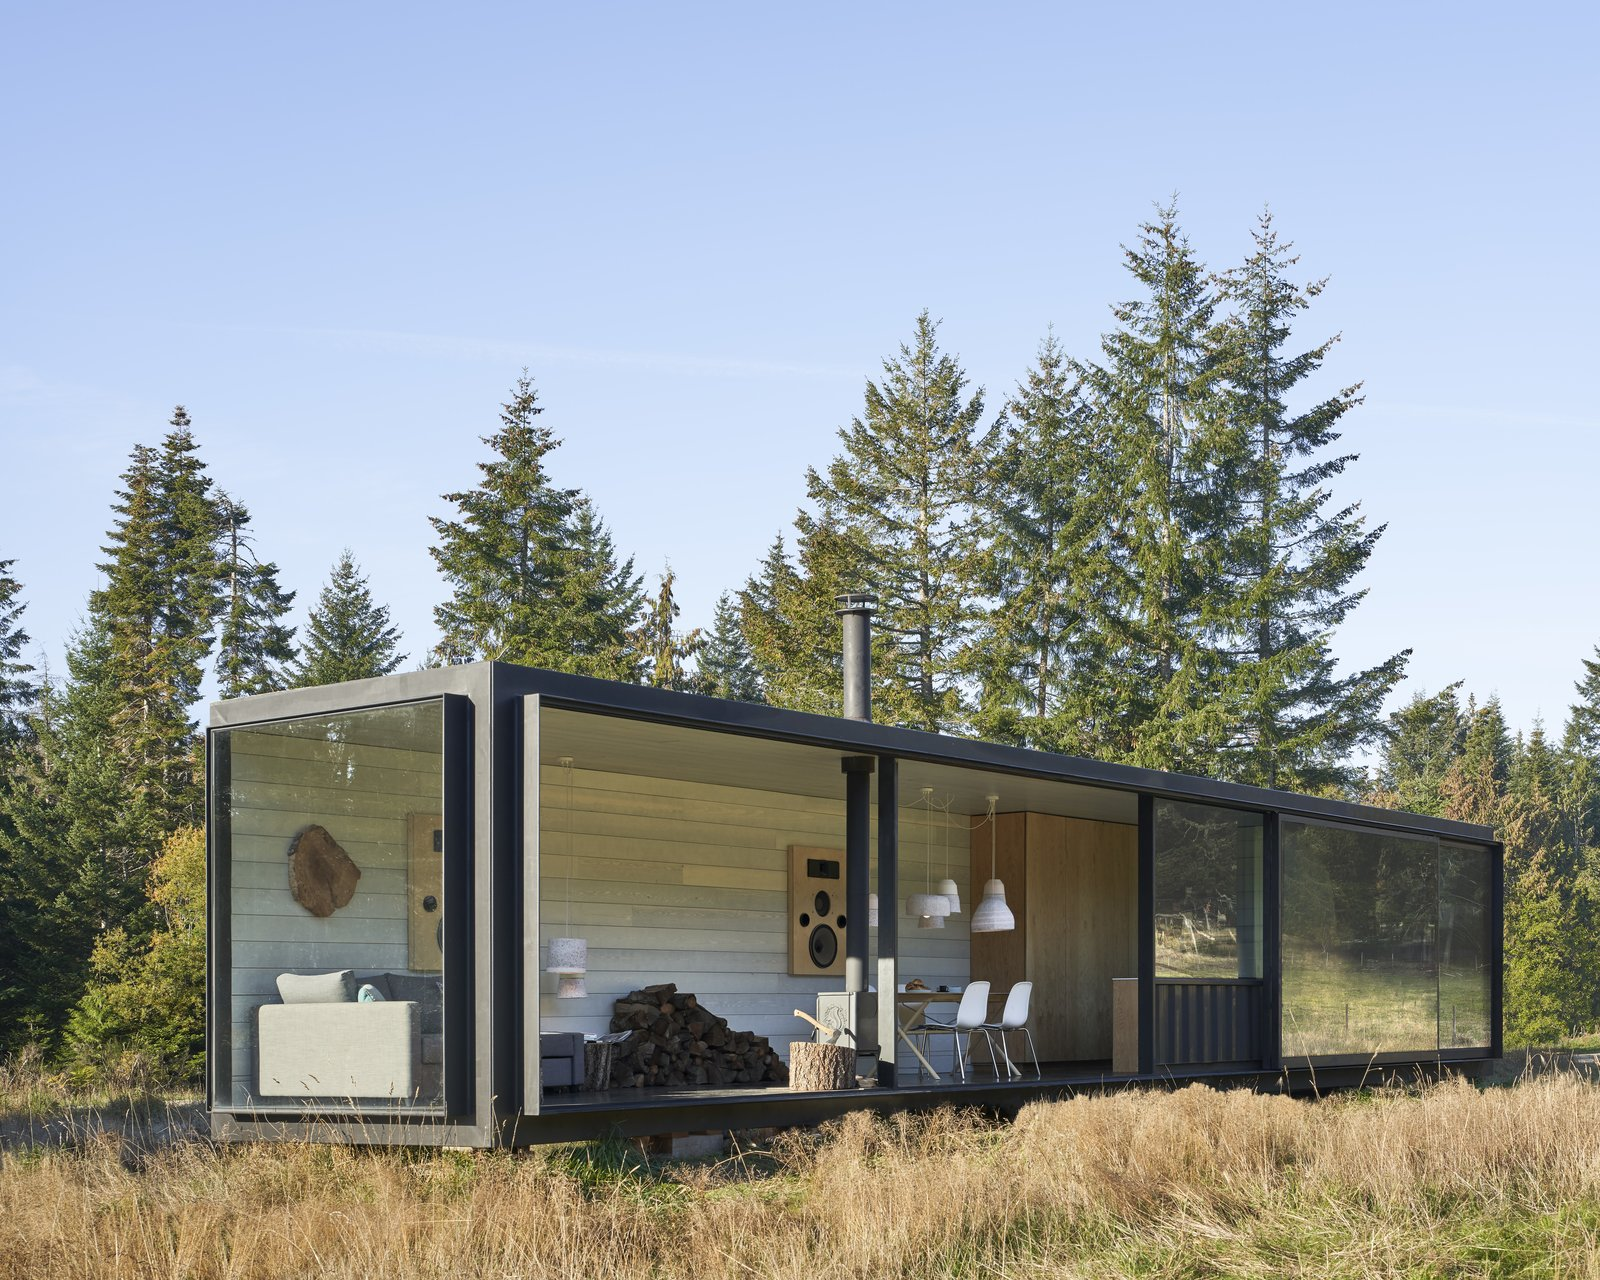 """""""It's the biggest one you can get,"""" says Patrick Powers of the shipping container he revamped and moved to Salt Spring Island, British Columbia. Steel frames hold ample glazing, including a pair of custom 2,000-pound sliding doors."""